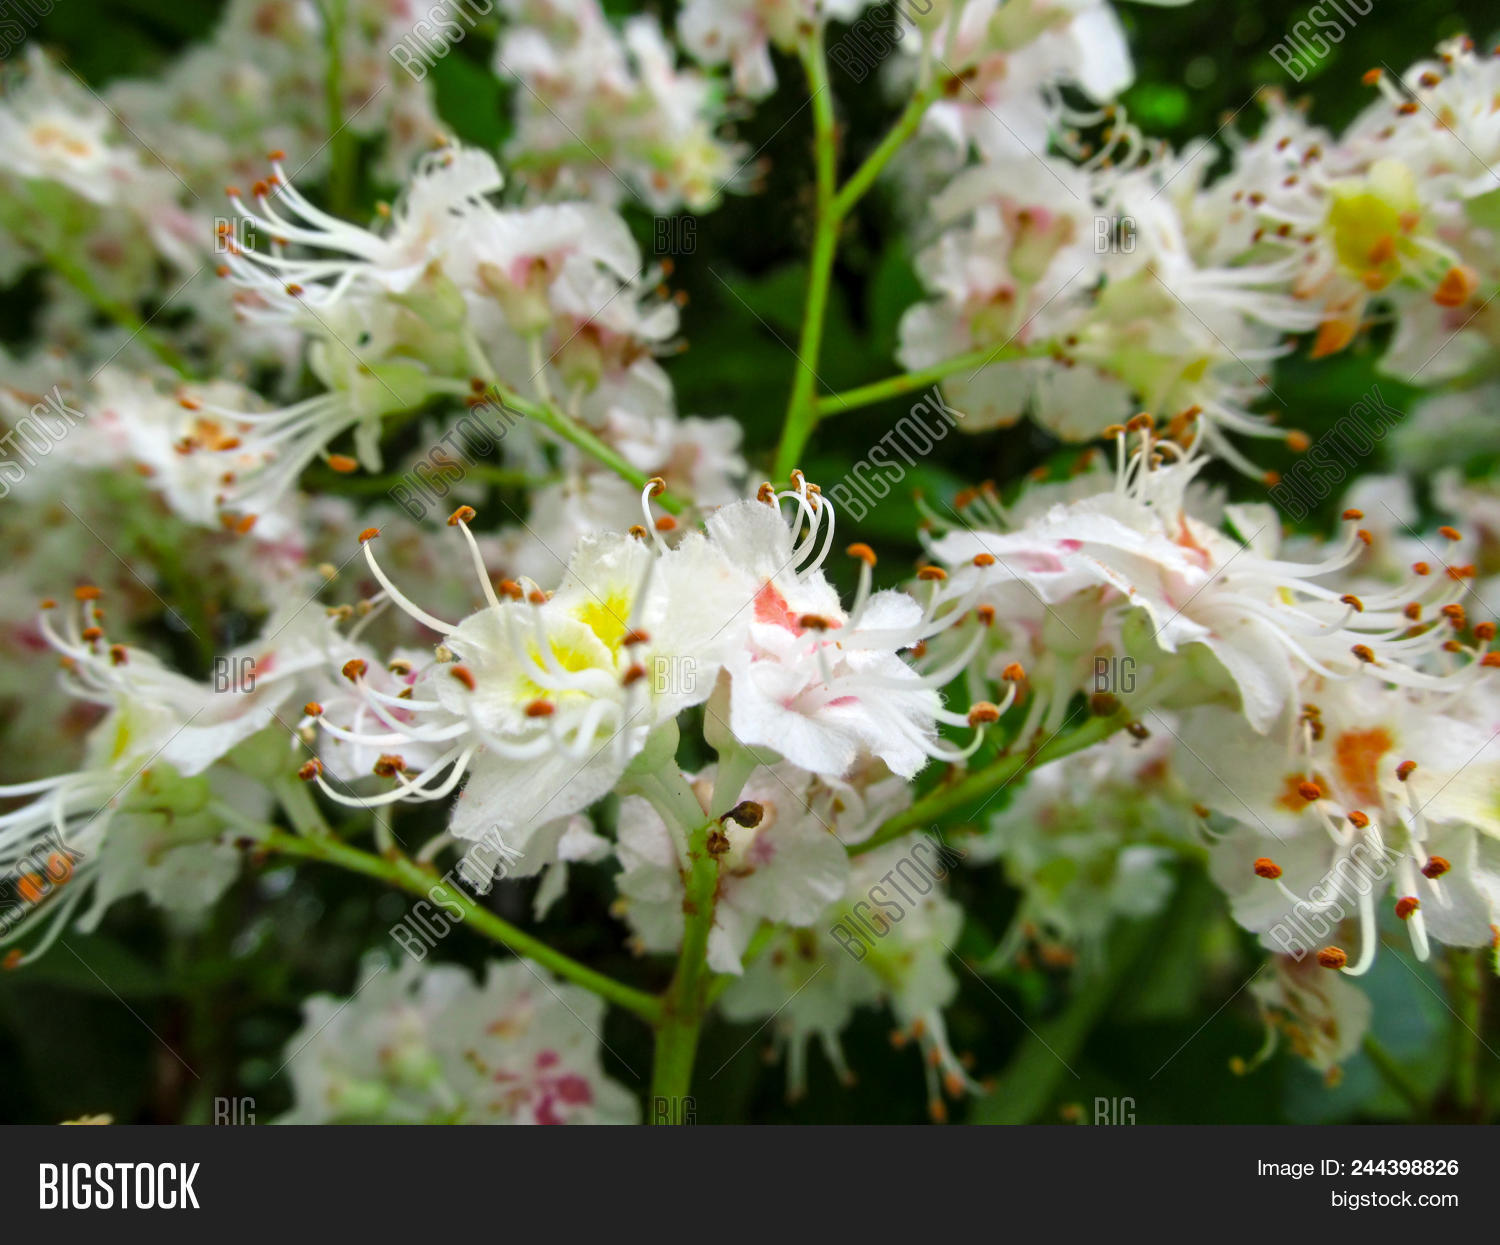 Delicate Floral Image Photo Free Trial Bigstock